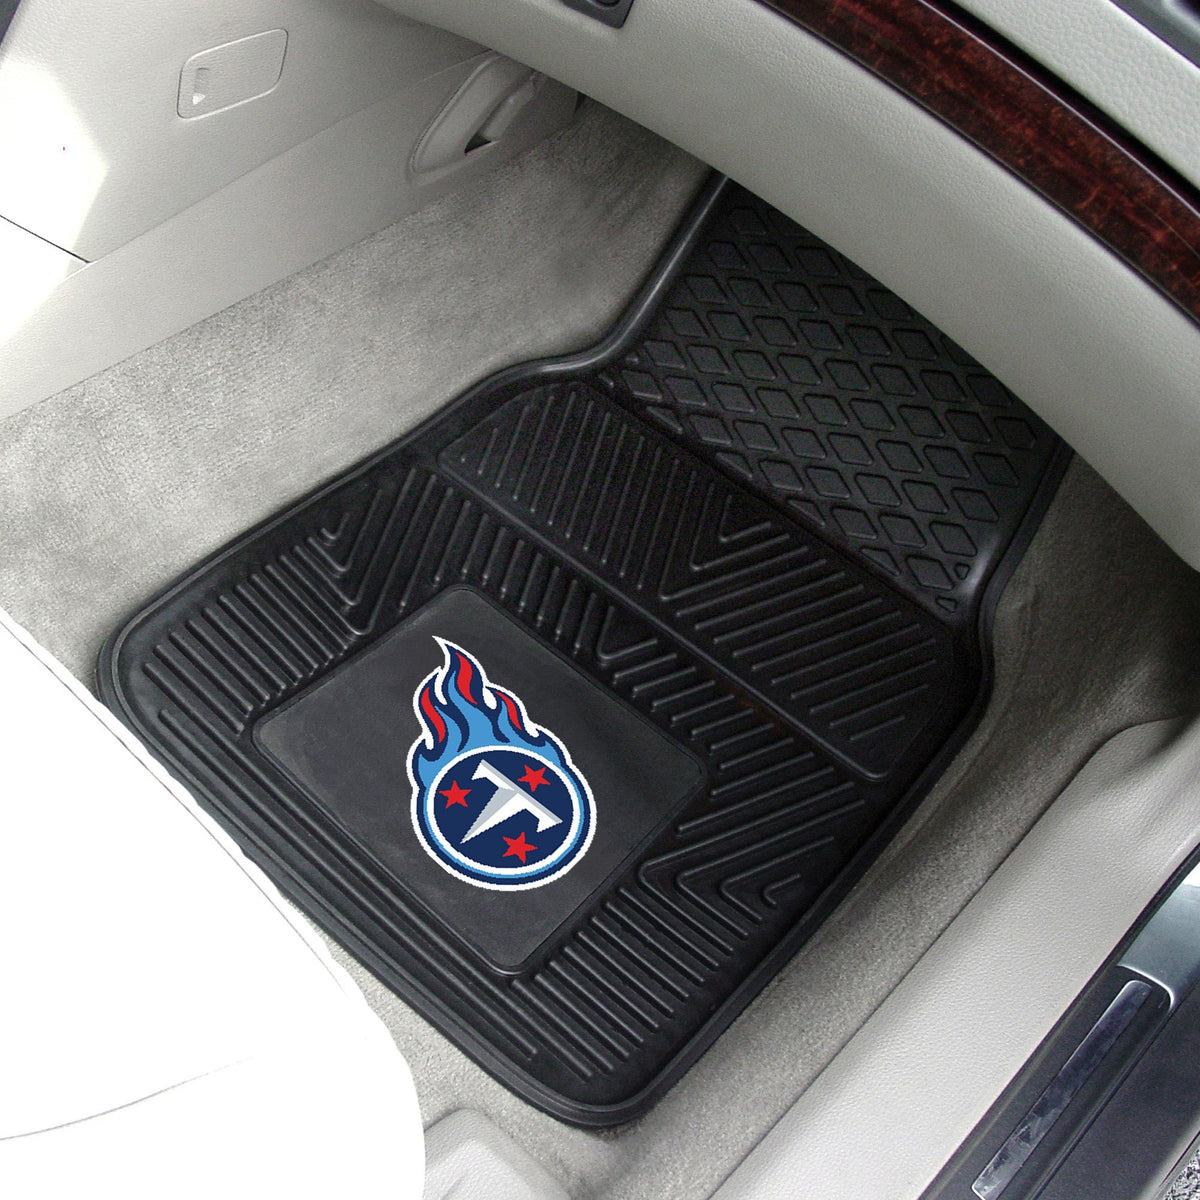 NFL - 2-pc Vinyl Car Mat Set NFL Mats, Front Car Mats, 2-pc Vinyl Car Mat Set, NFL, Auto Fan Mats Tennessee Titans